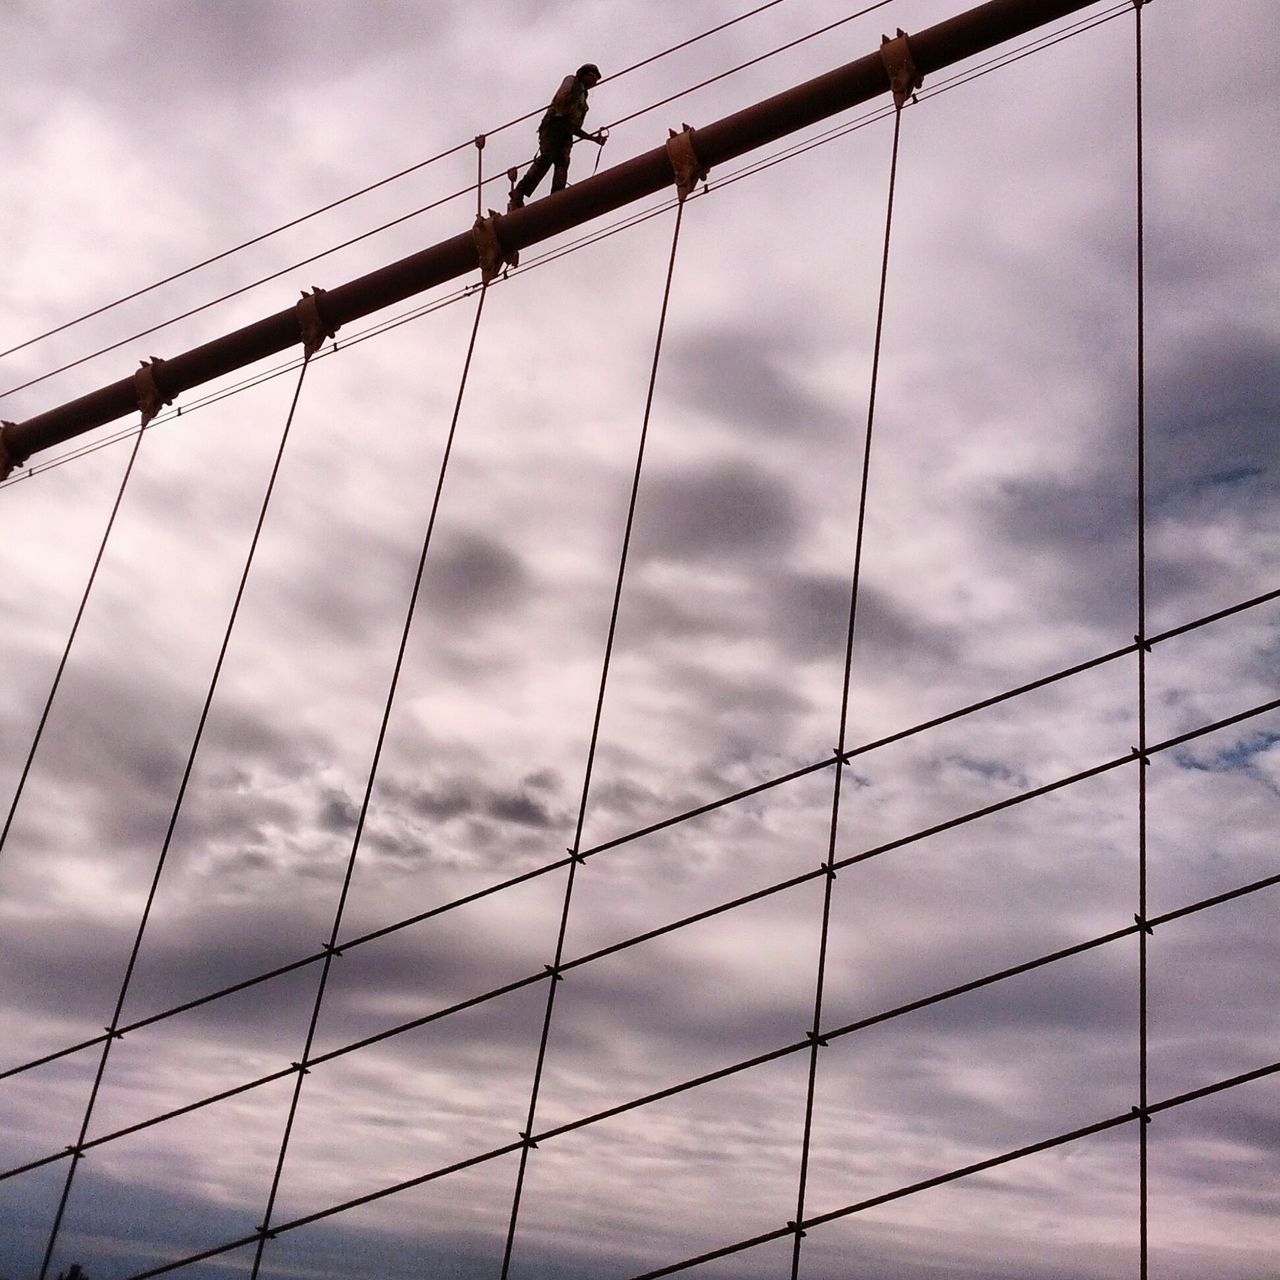 The Action Photographer - 2015 EyeEm Awards Brooklynbridge BridgePainter Newyorkcity Cloudy Newtothis Androidography Check This Out Clouds And Sky Cloudporn